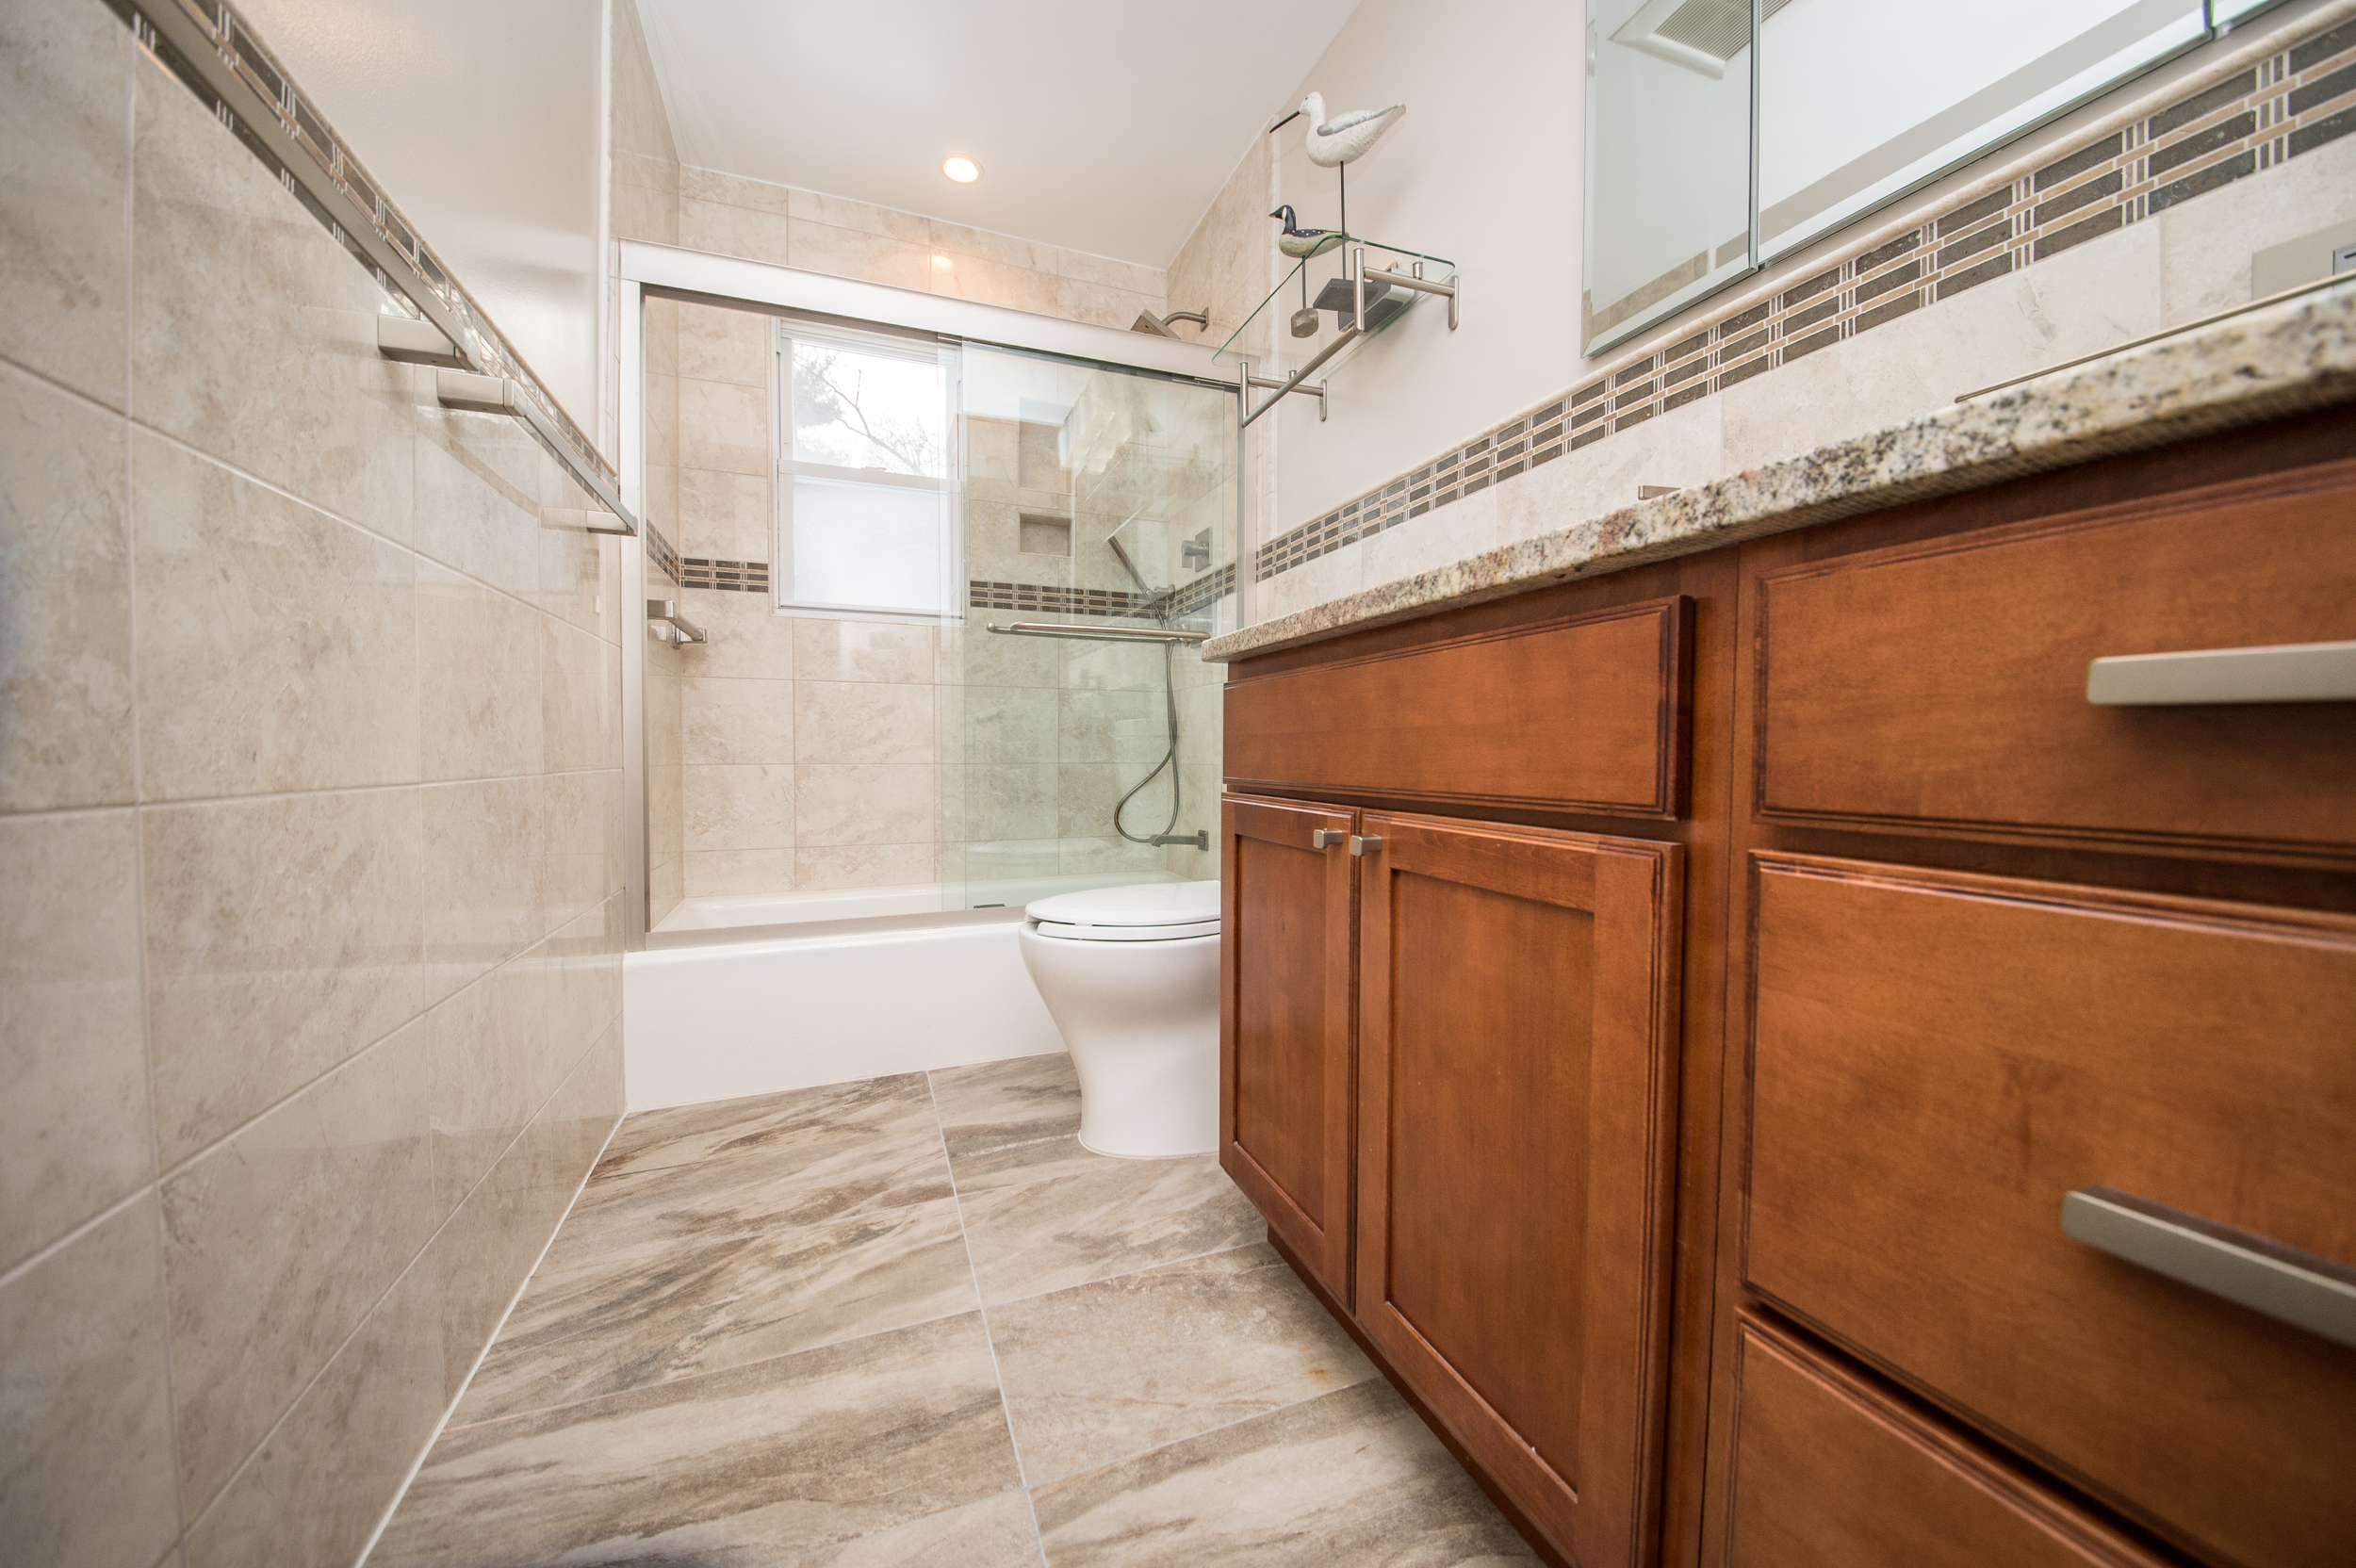 Bathroom Remodeling Towson bathroom remodeling washington dc, maryland — euro design remodel